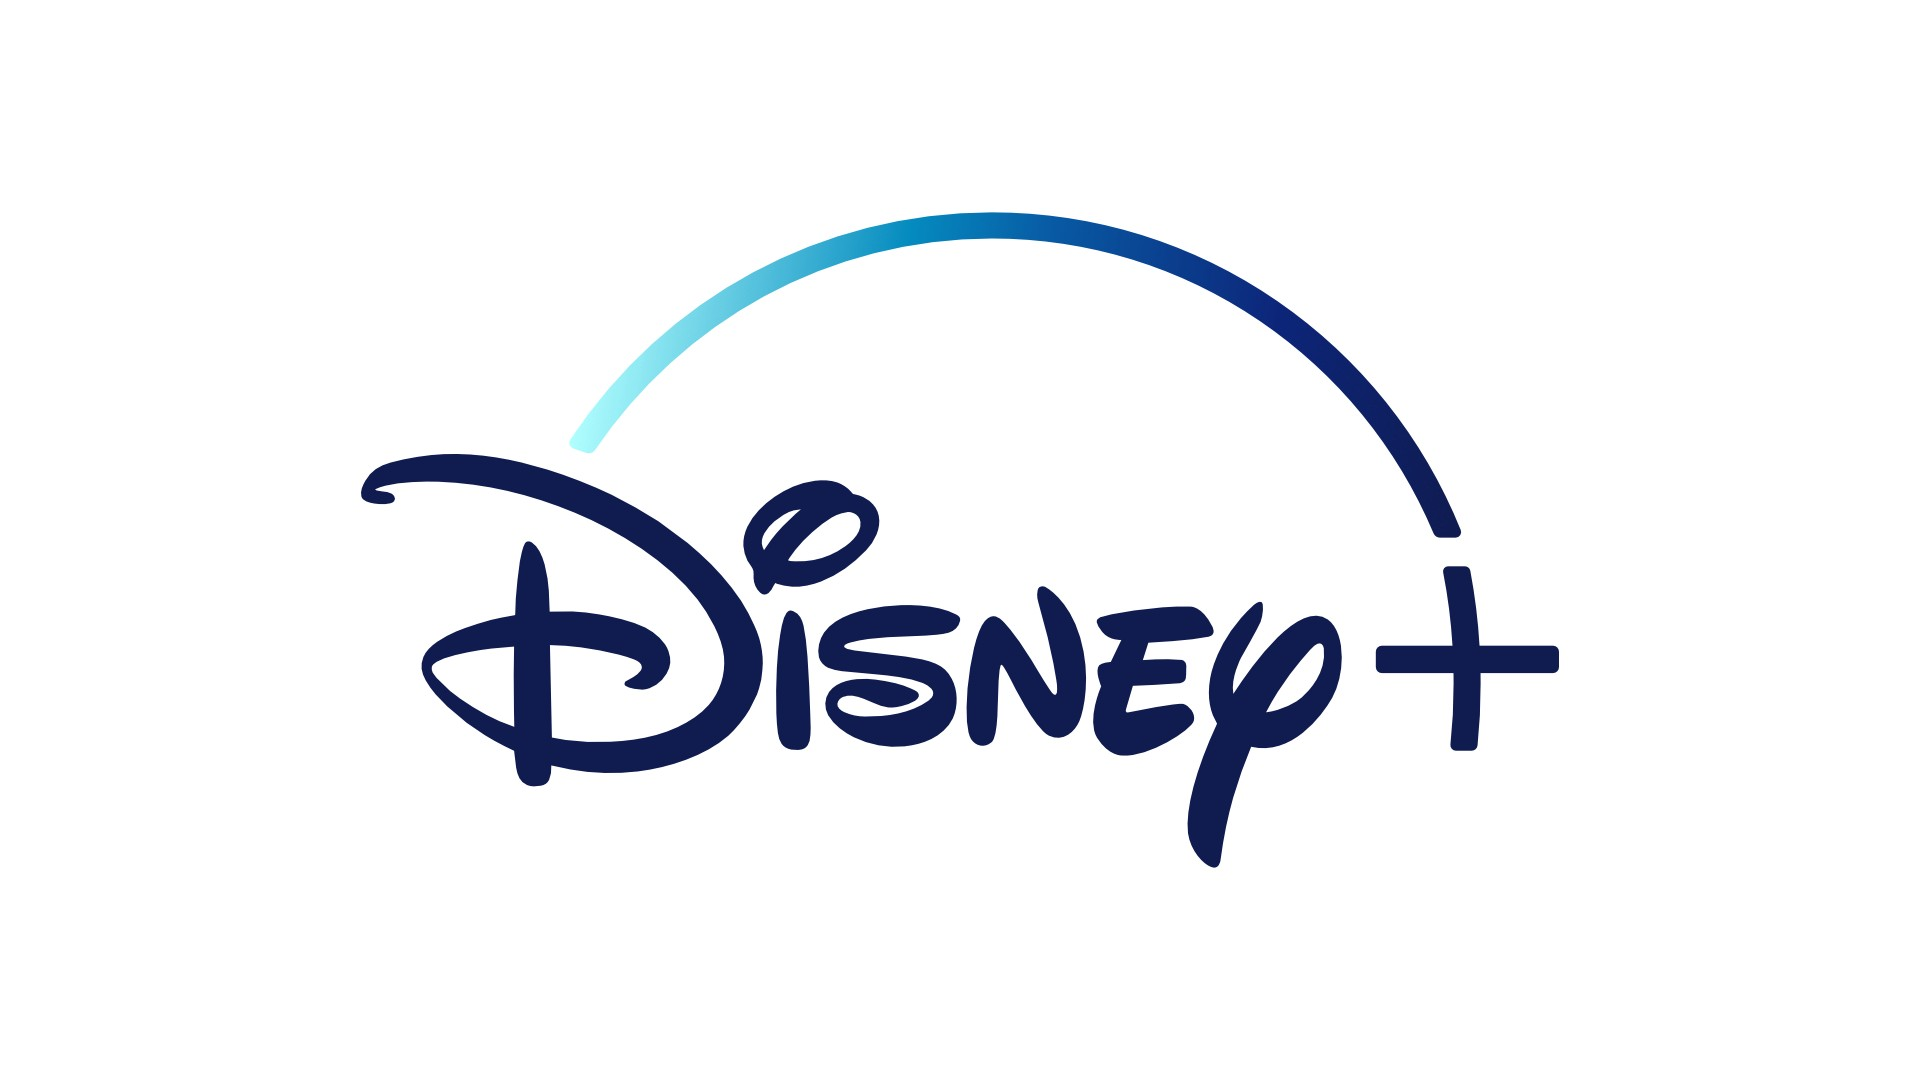 DisneyPlus: Pros and Cons